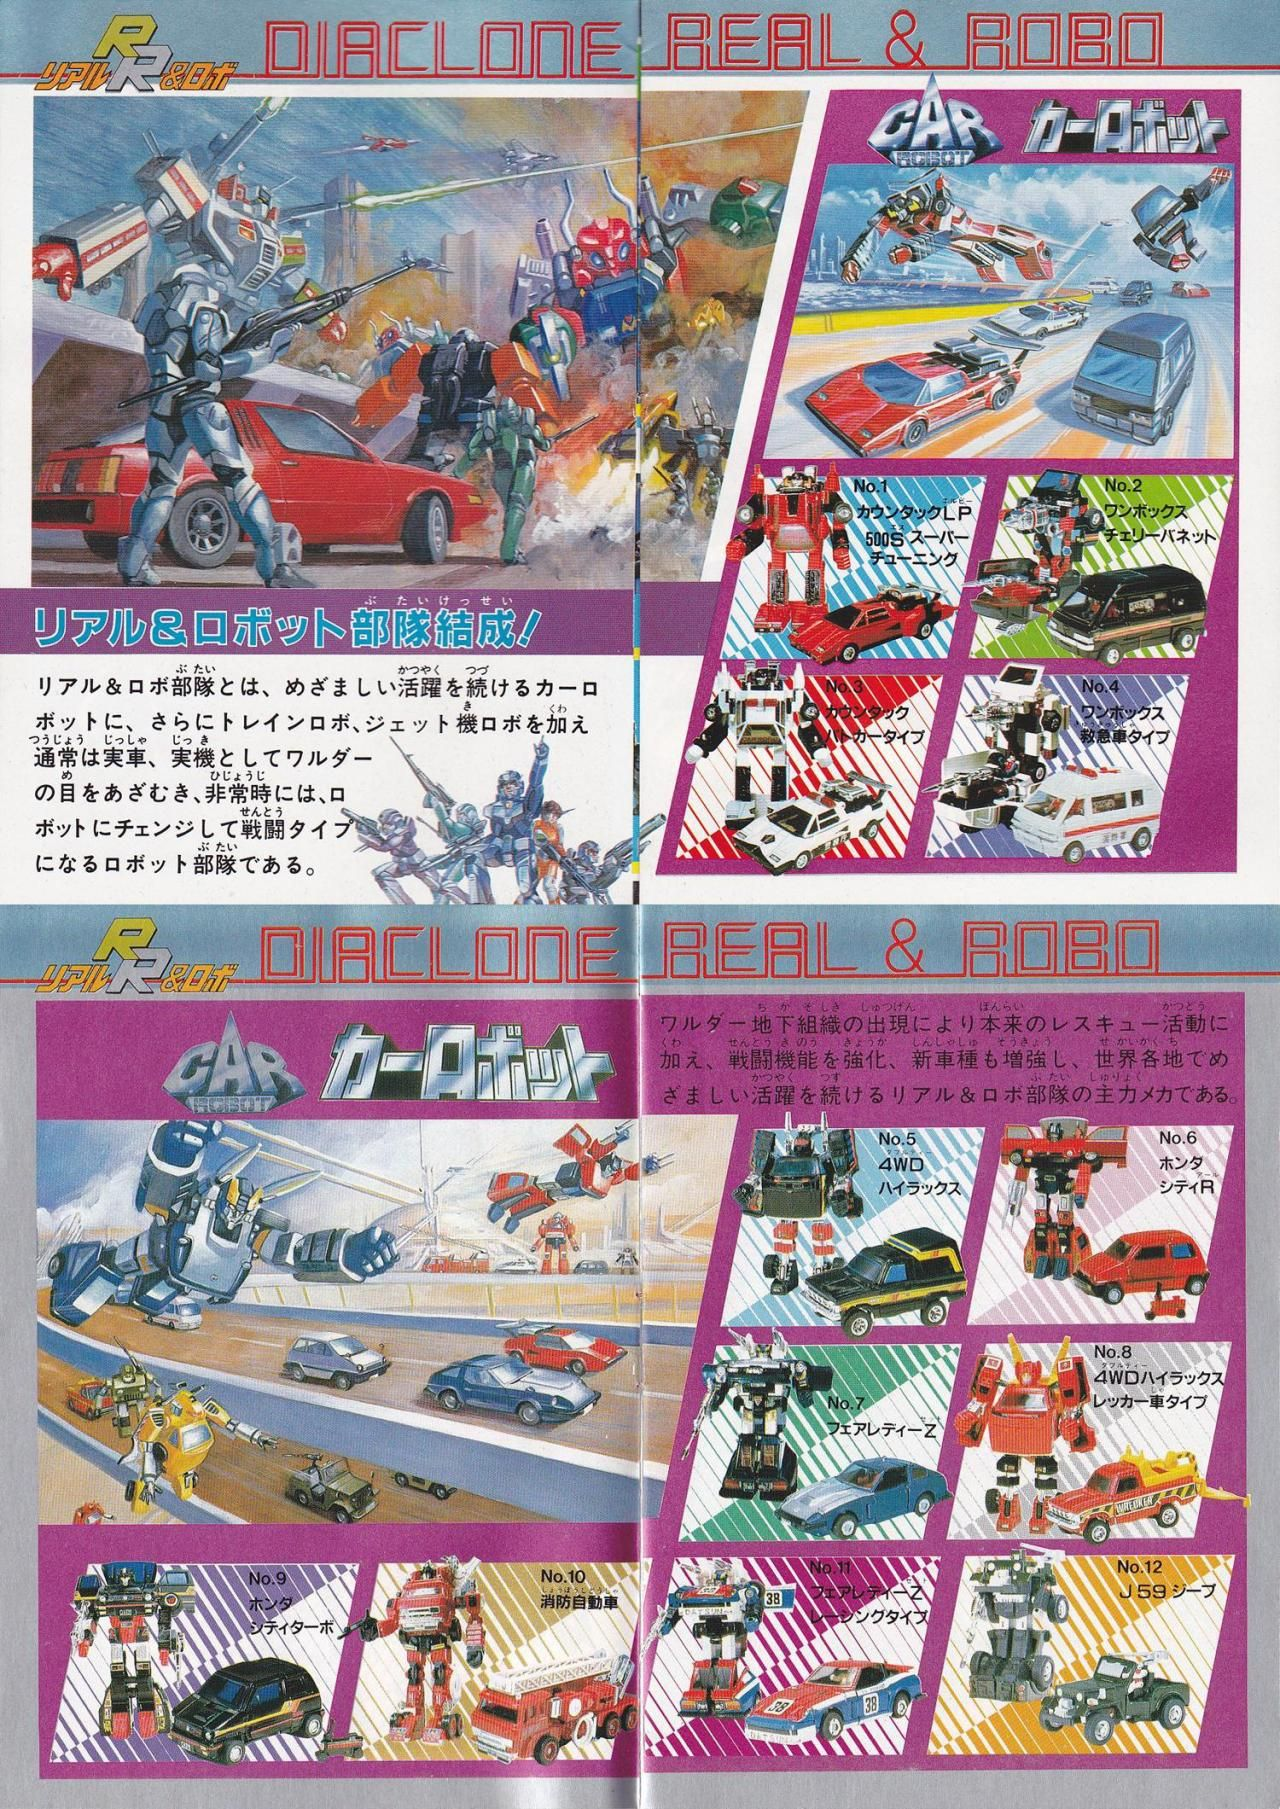 Pre Transformers In Micronauts Microman Full Version E Special Edition Kindle Mangas Page 2 Transformers Art Japanese Toys Transformers